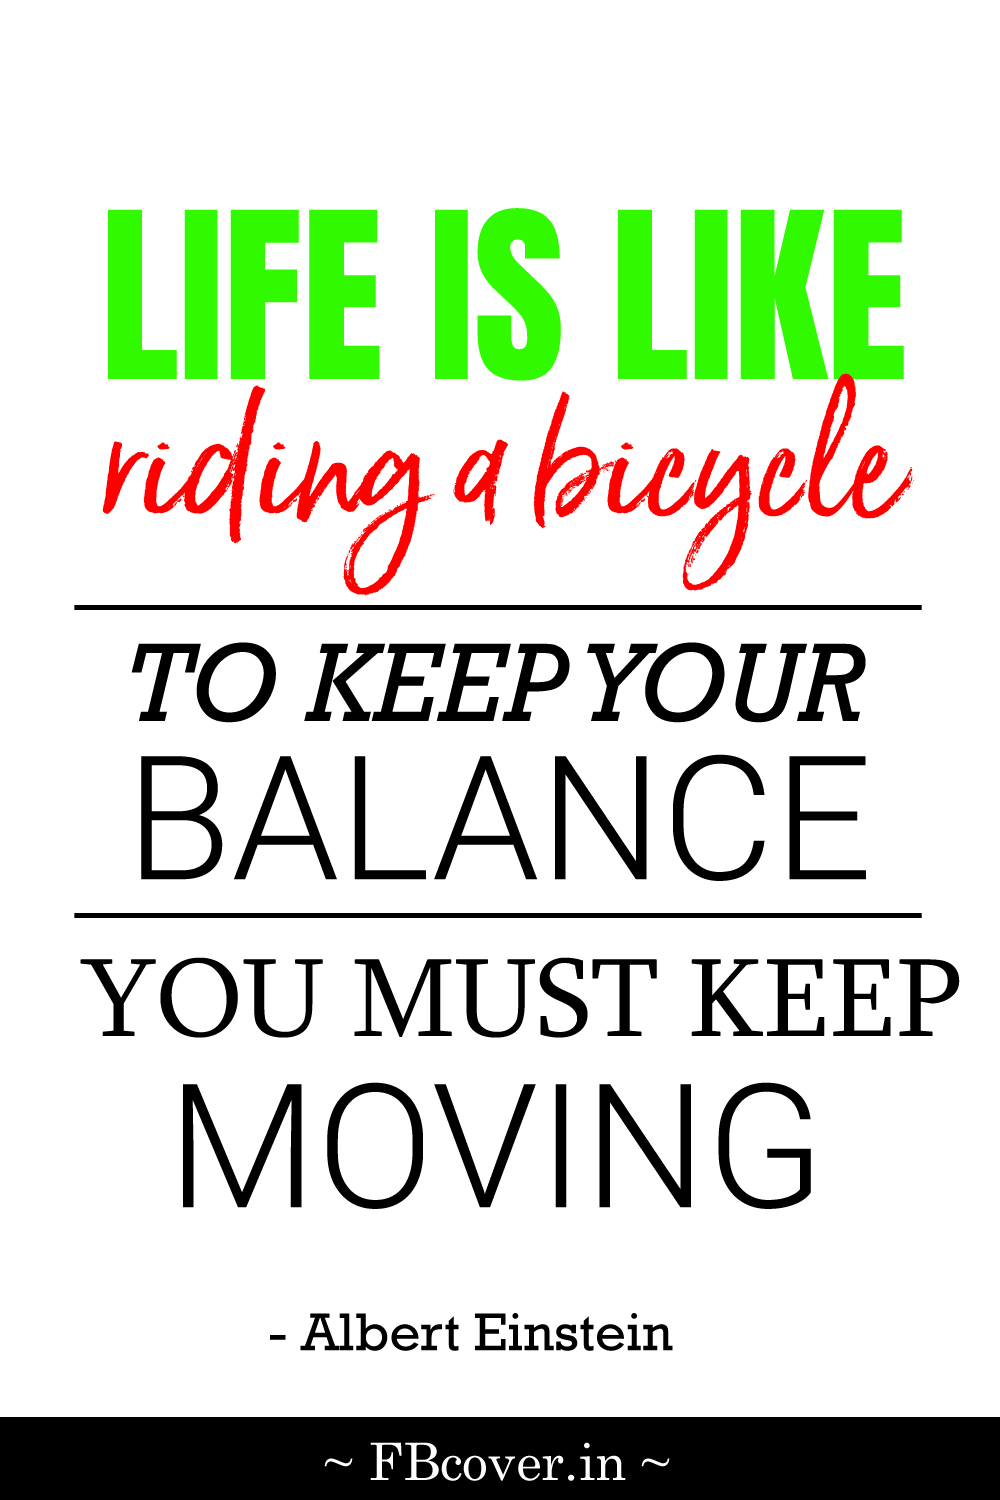 """Albert Einstein Quotes: """"life is like riding a bicycle. To keep your balance you must keep moving."""""""